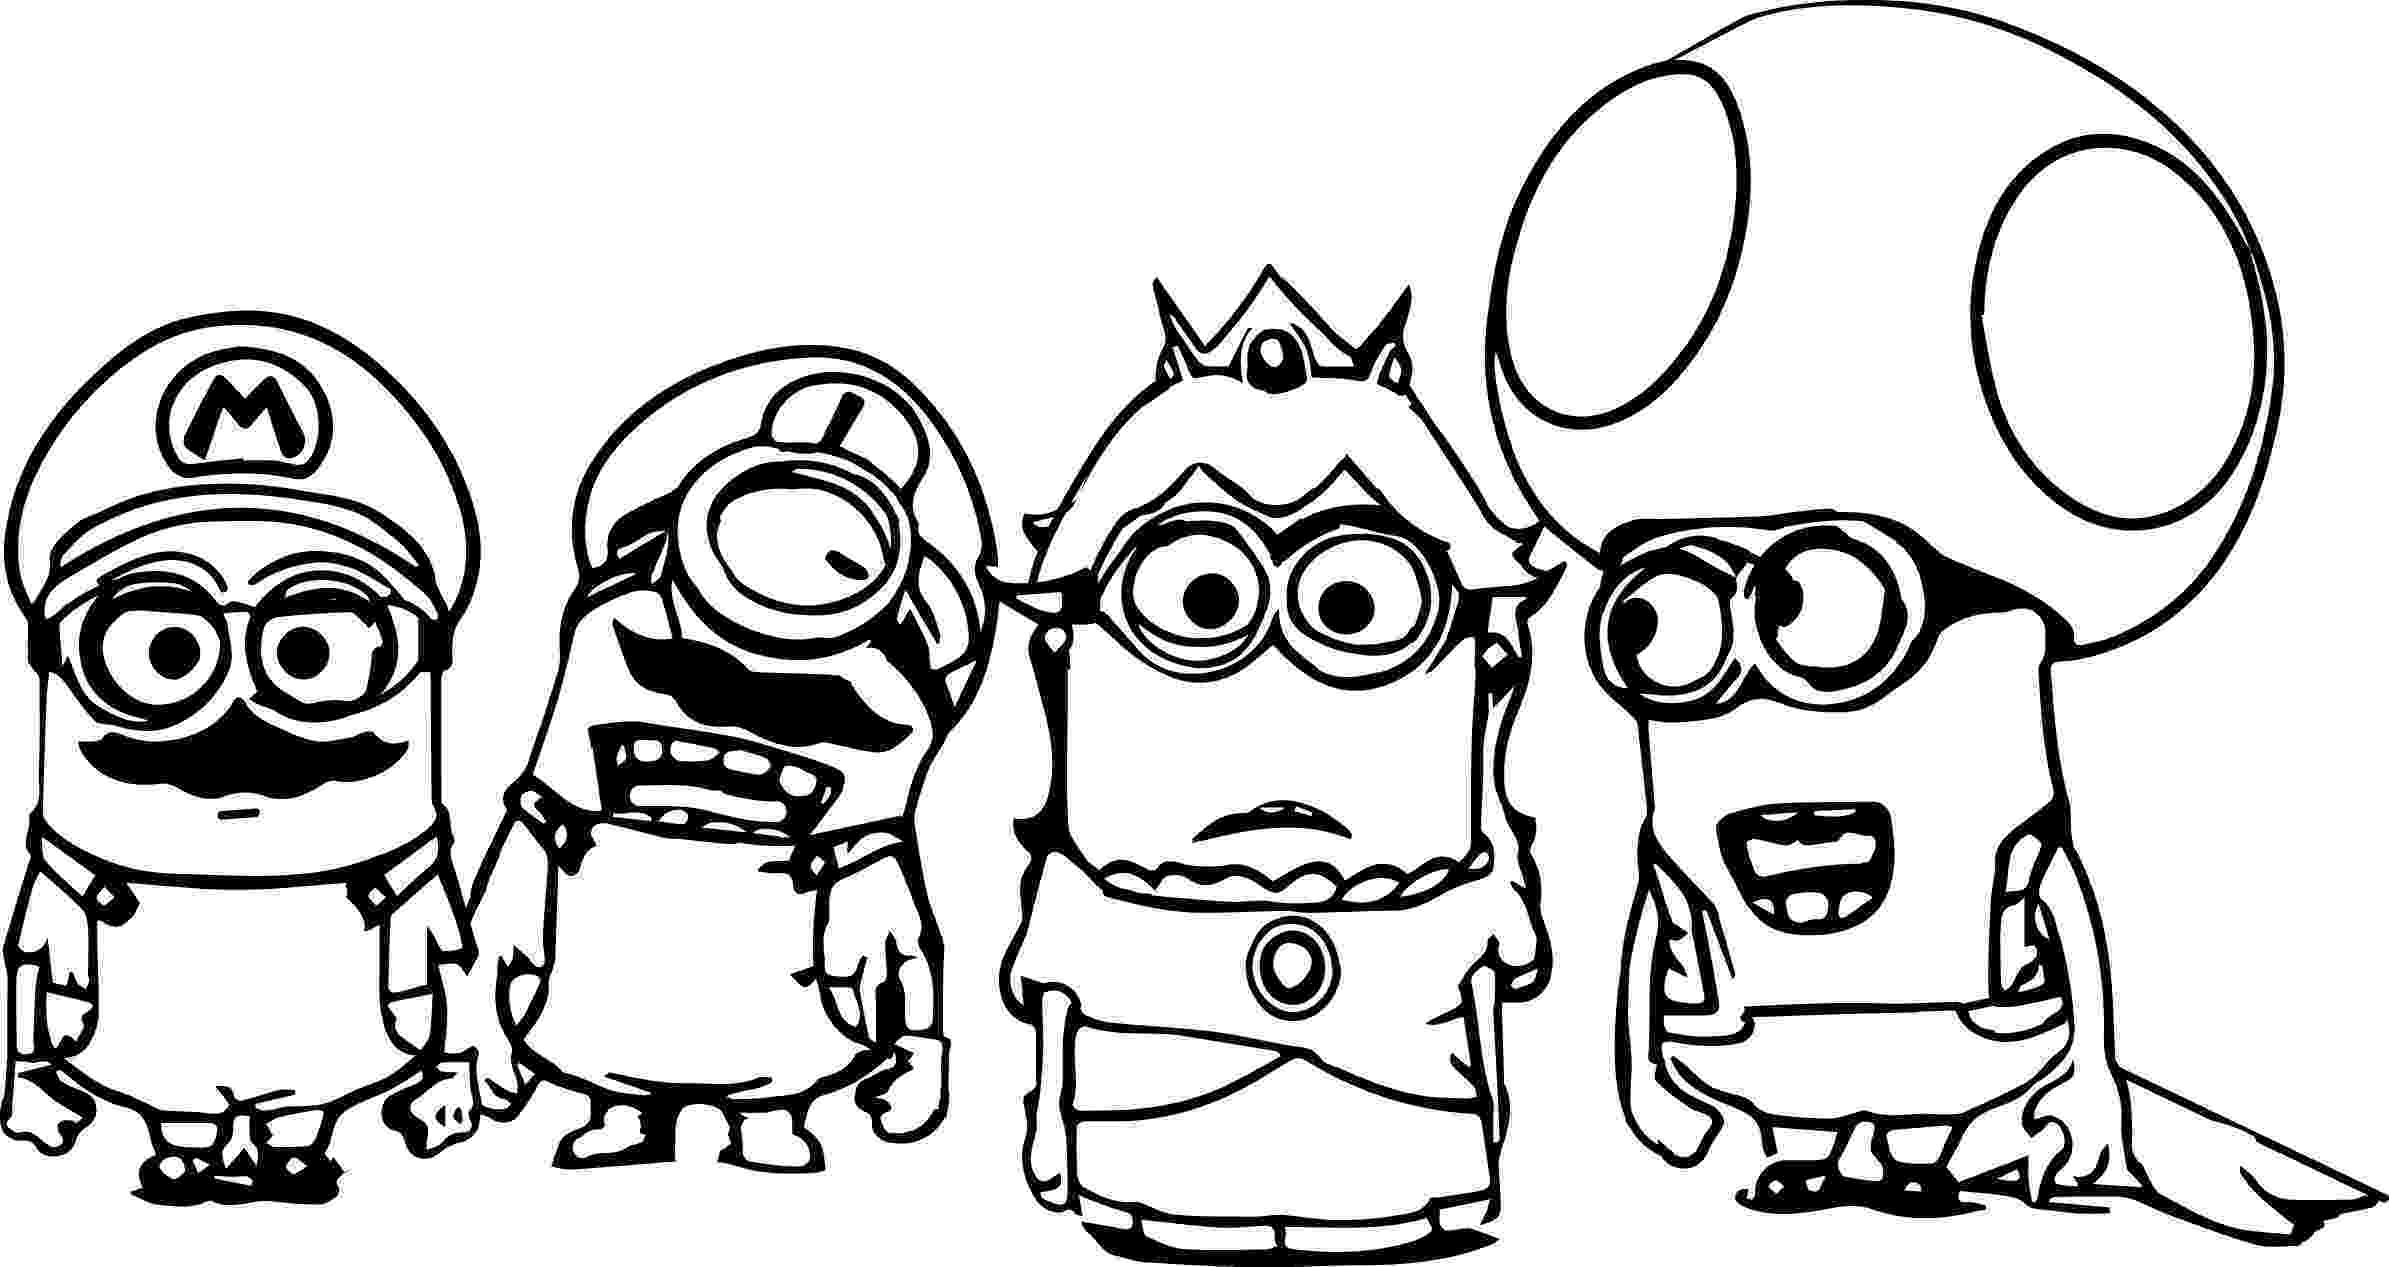 minions to color minion coloring pages best coloring pages for kids minions to color